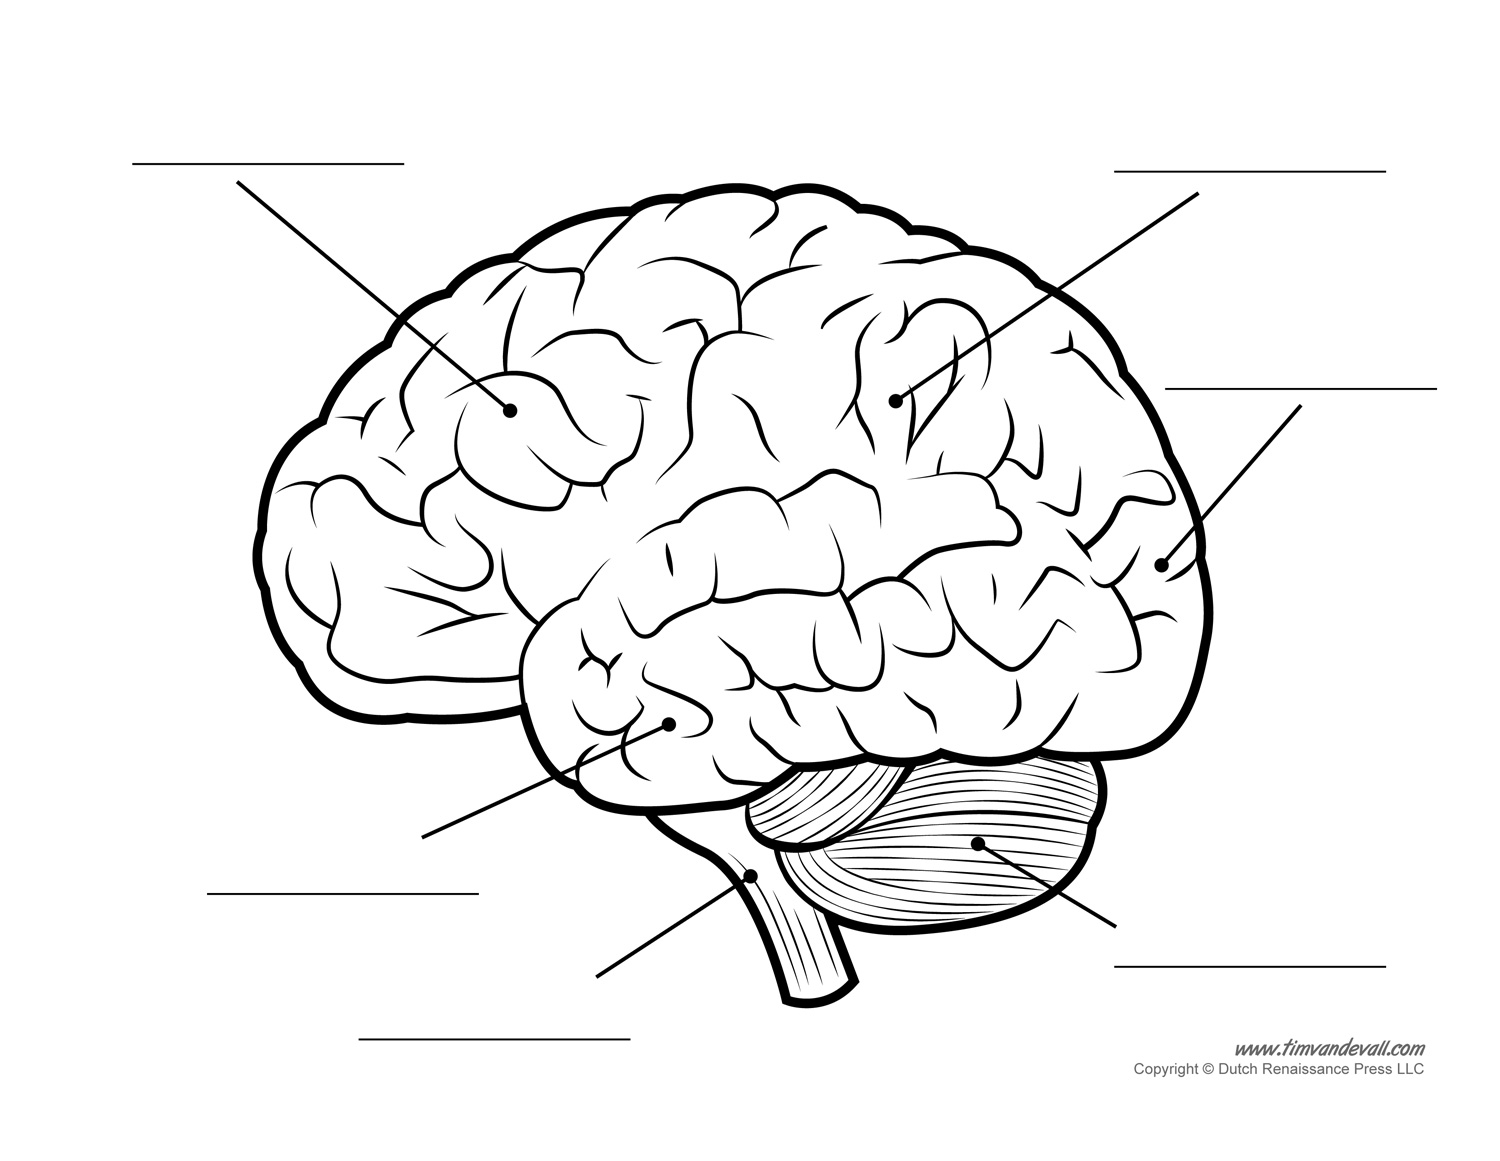 Free Printable Blank Brain Download Free Clip Art Free Clip Art On Clipart Library